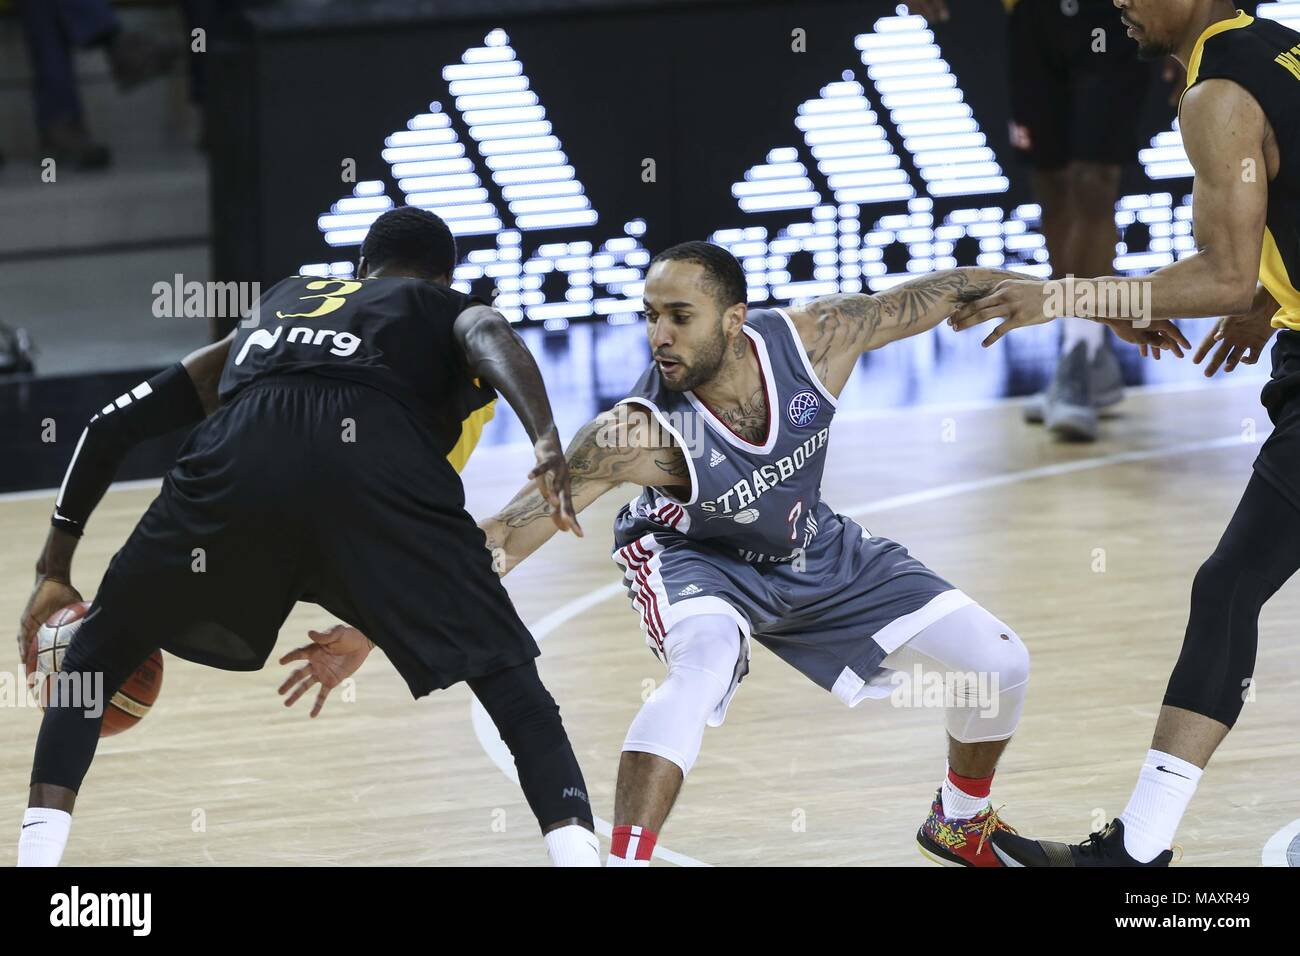 Strasbourg, France. 4th Apr, 2018. Dee Bost (R) from SIG Strasbourg with Manny Harris (L) from AEK seen during the Basketball Champions League match between SIG Strasbourg and AEK. Credit: Elyxandro Cegarra/SOPA Images/ZUMA Wire/Alamy Live News - Stock Image